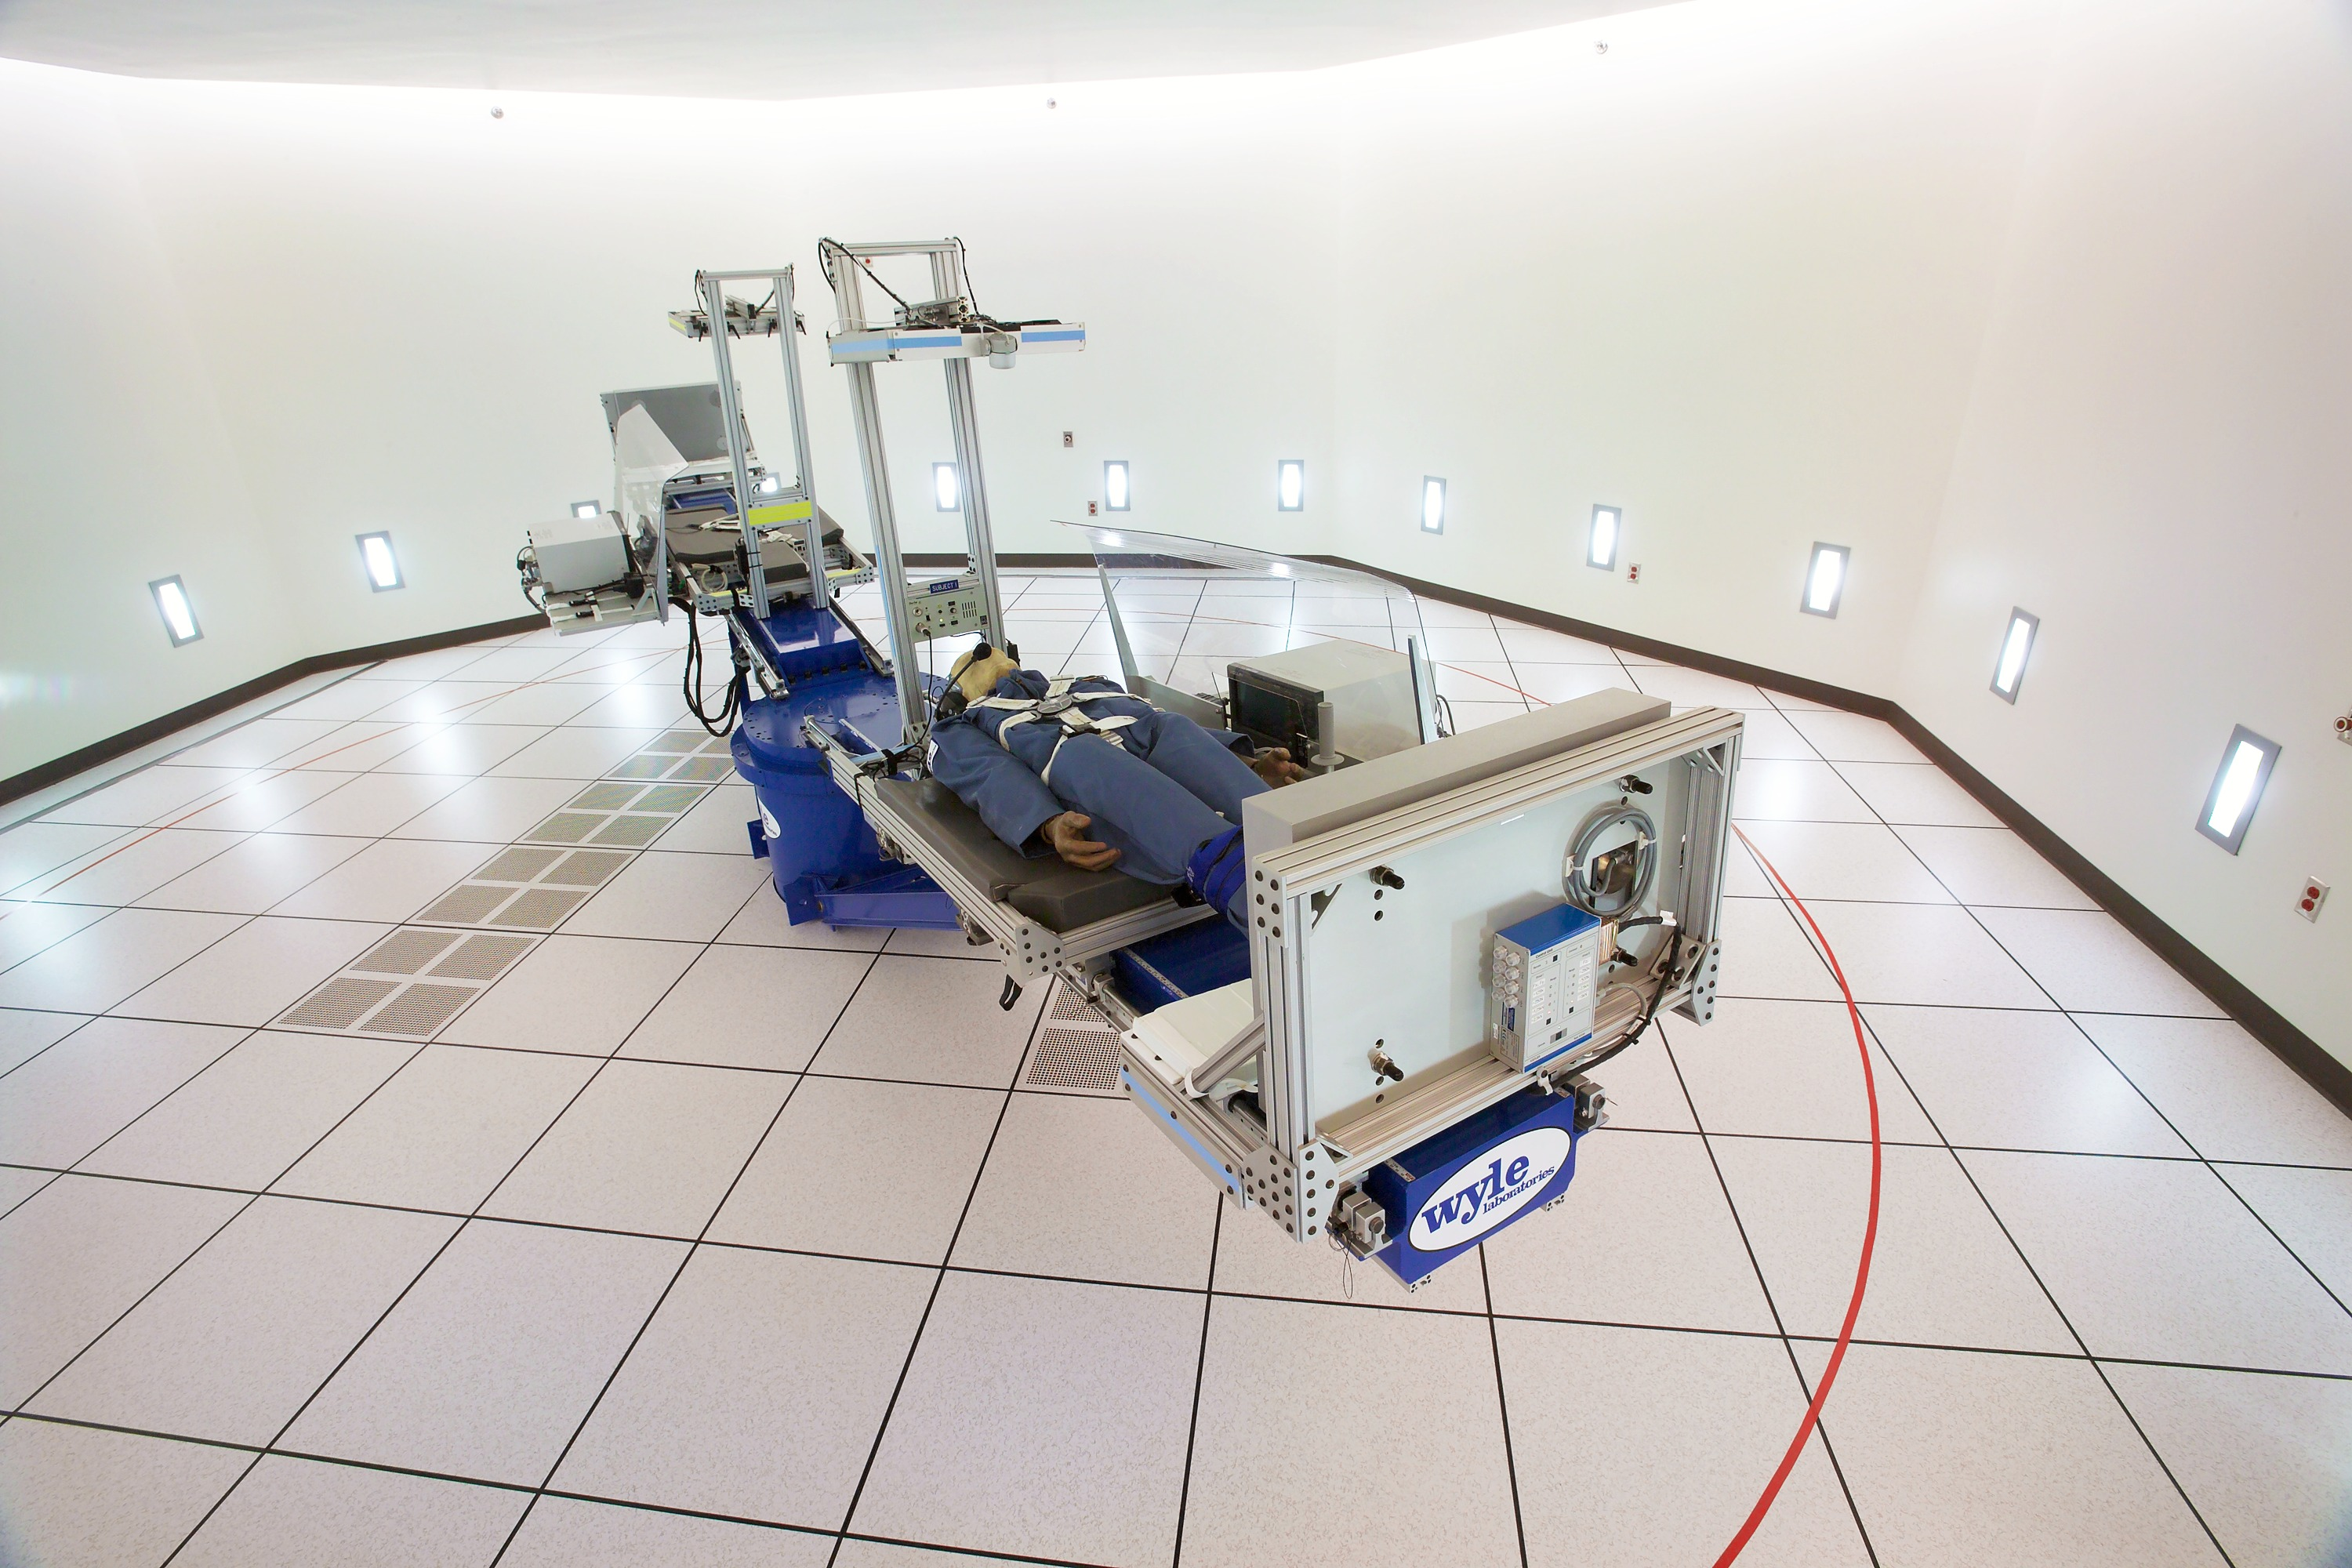 NASA Artificial Gravity Test (page 2) - Pics about space